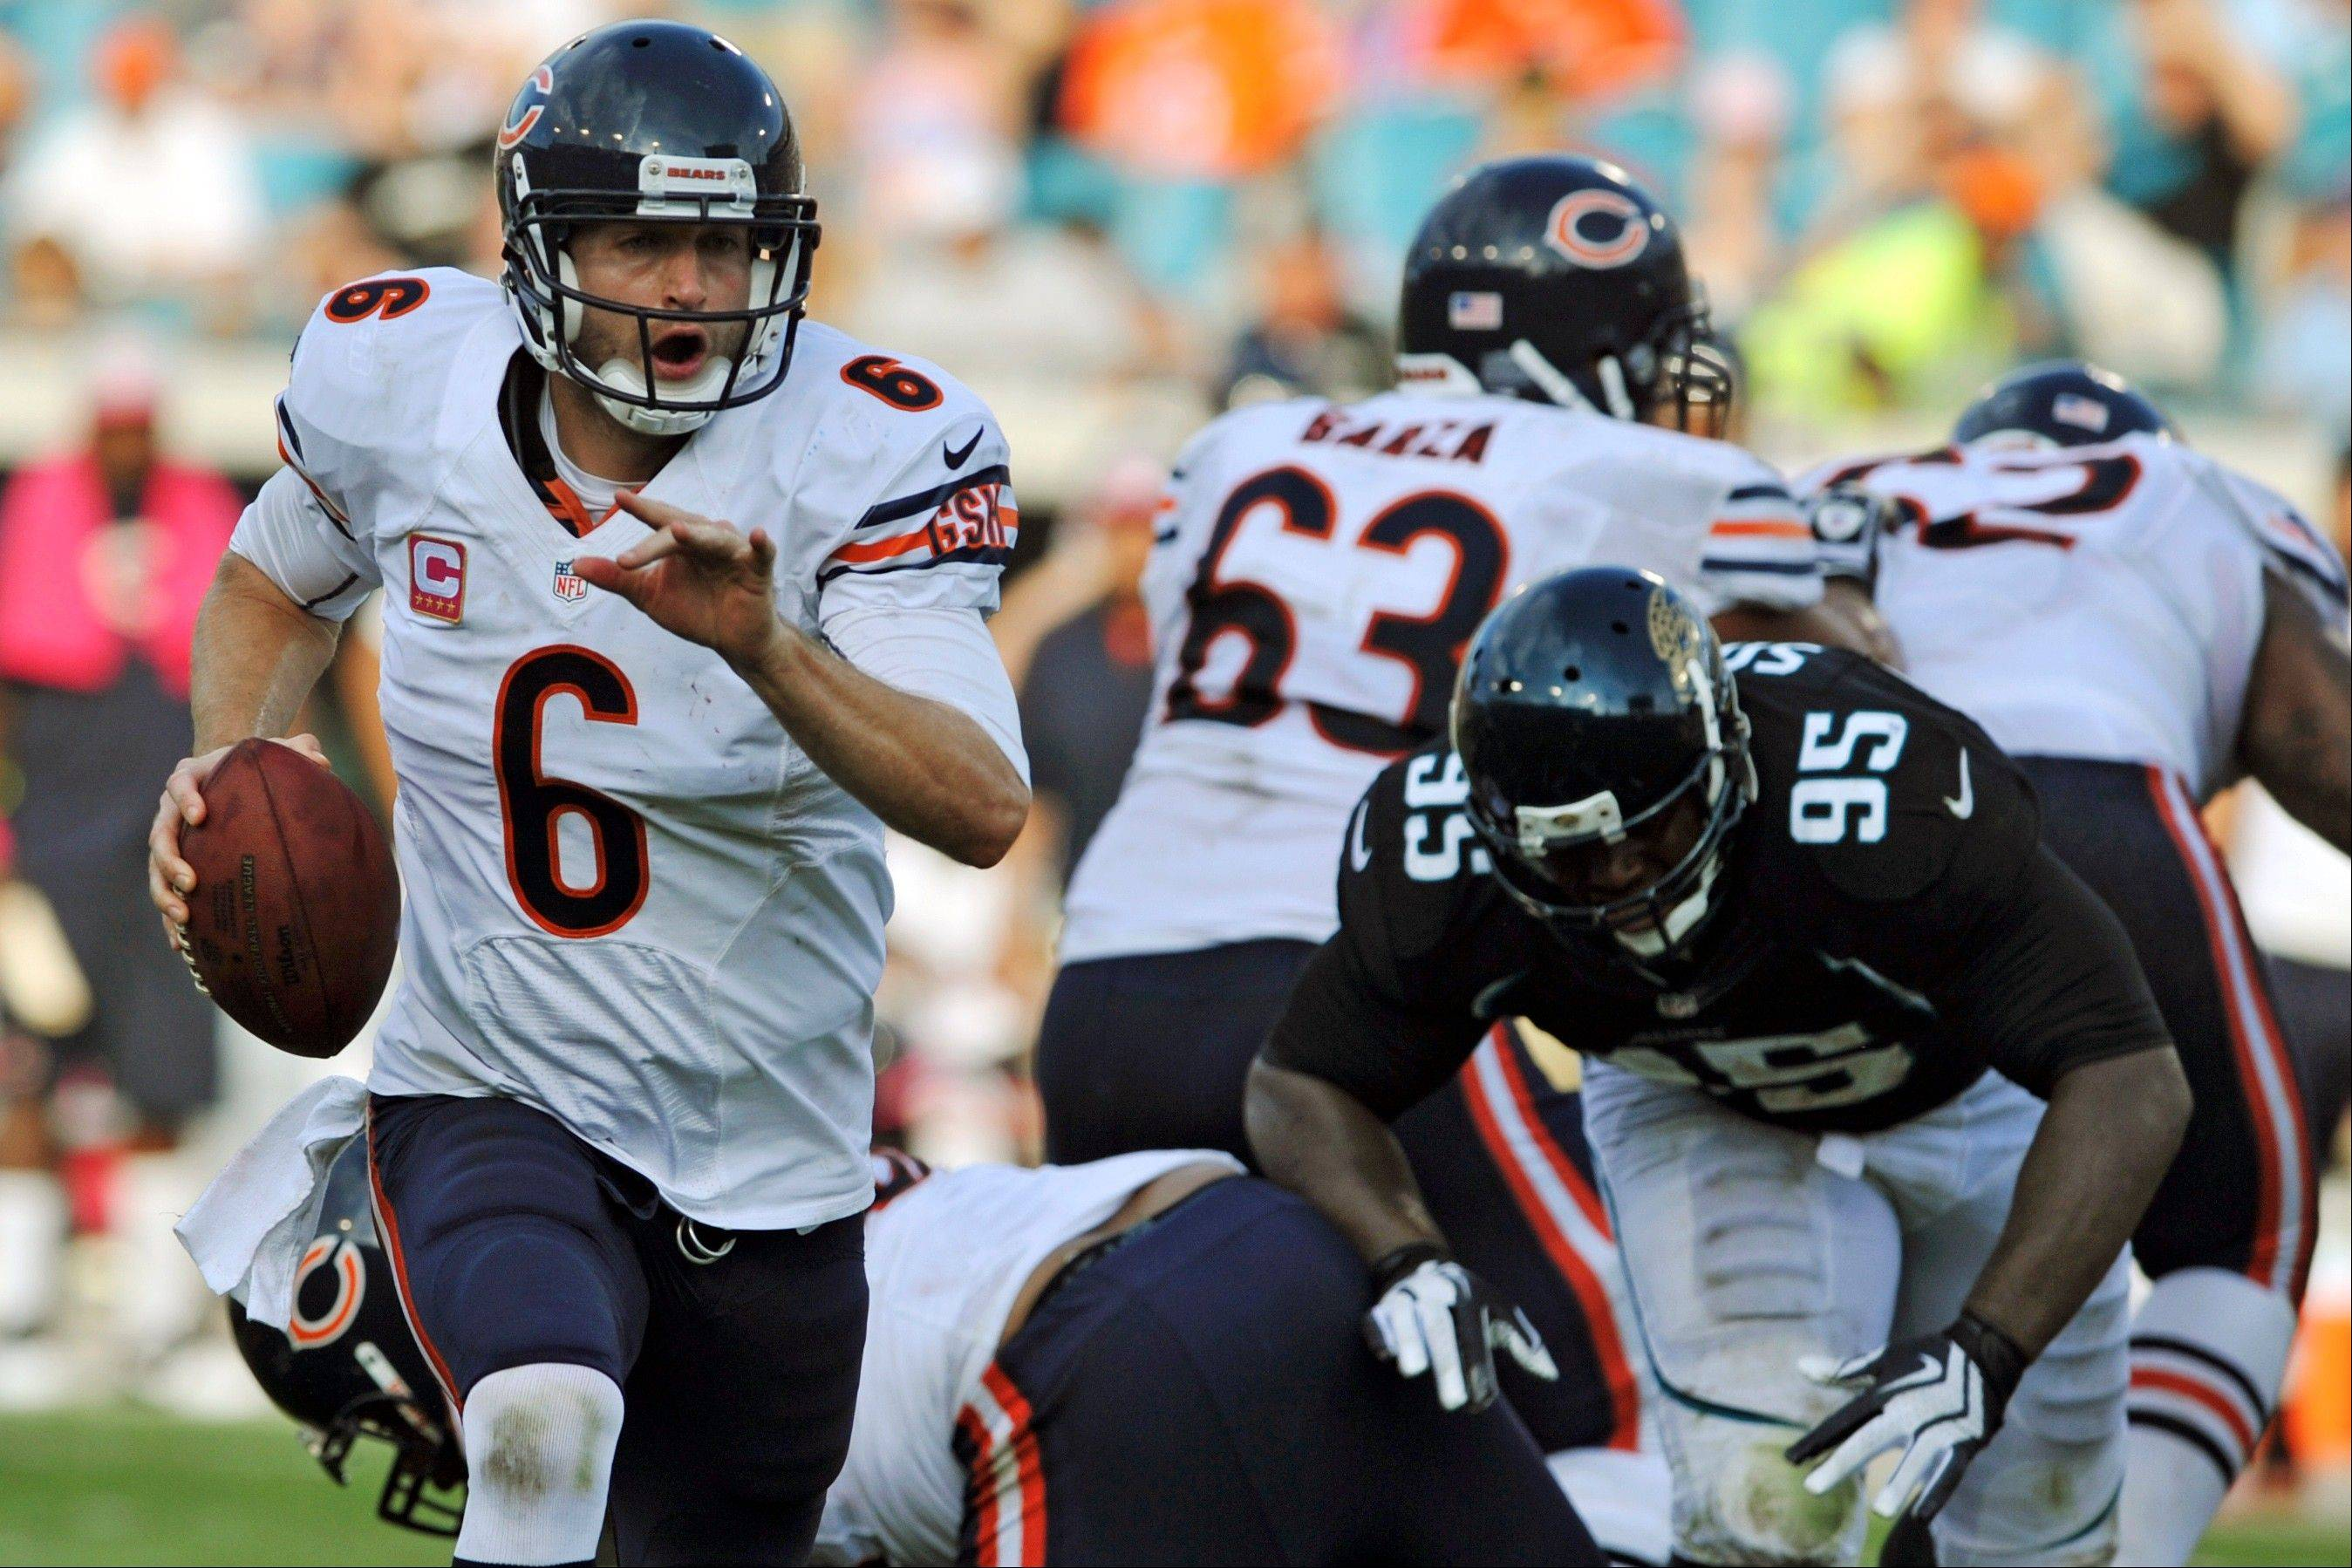 Bears quarterback Jay Cutler received strong support from general manager Phil Emery, who likes the passion and leadership he sees in Cutler.